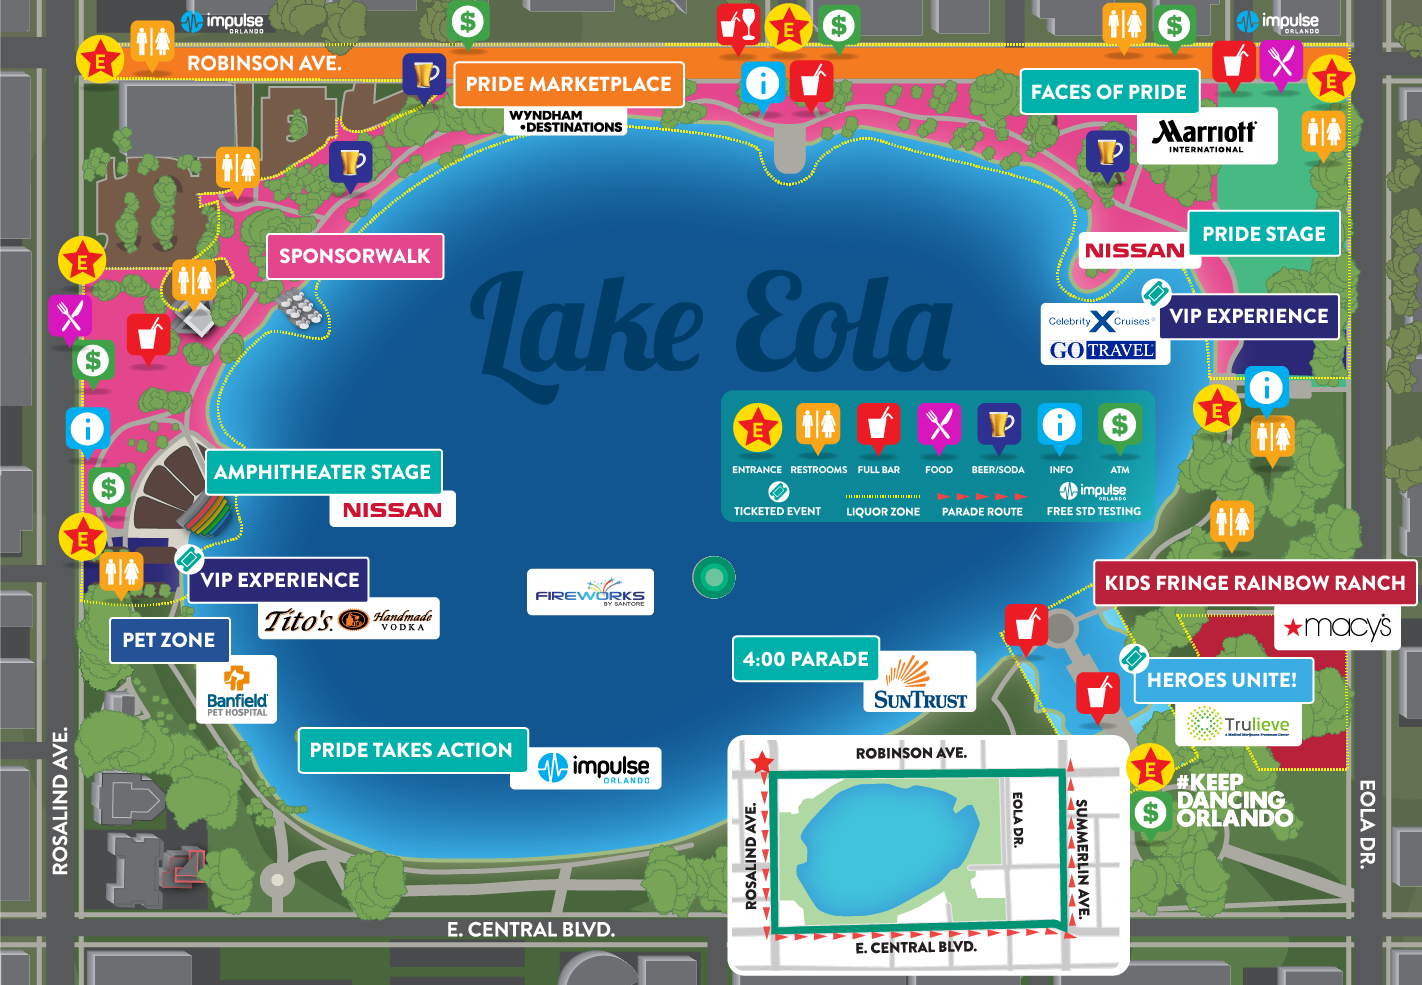 2019 Come Out With Pride Festival Map